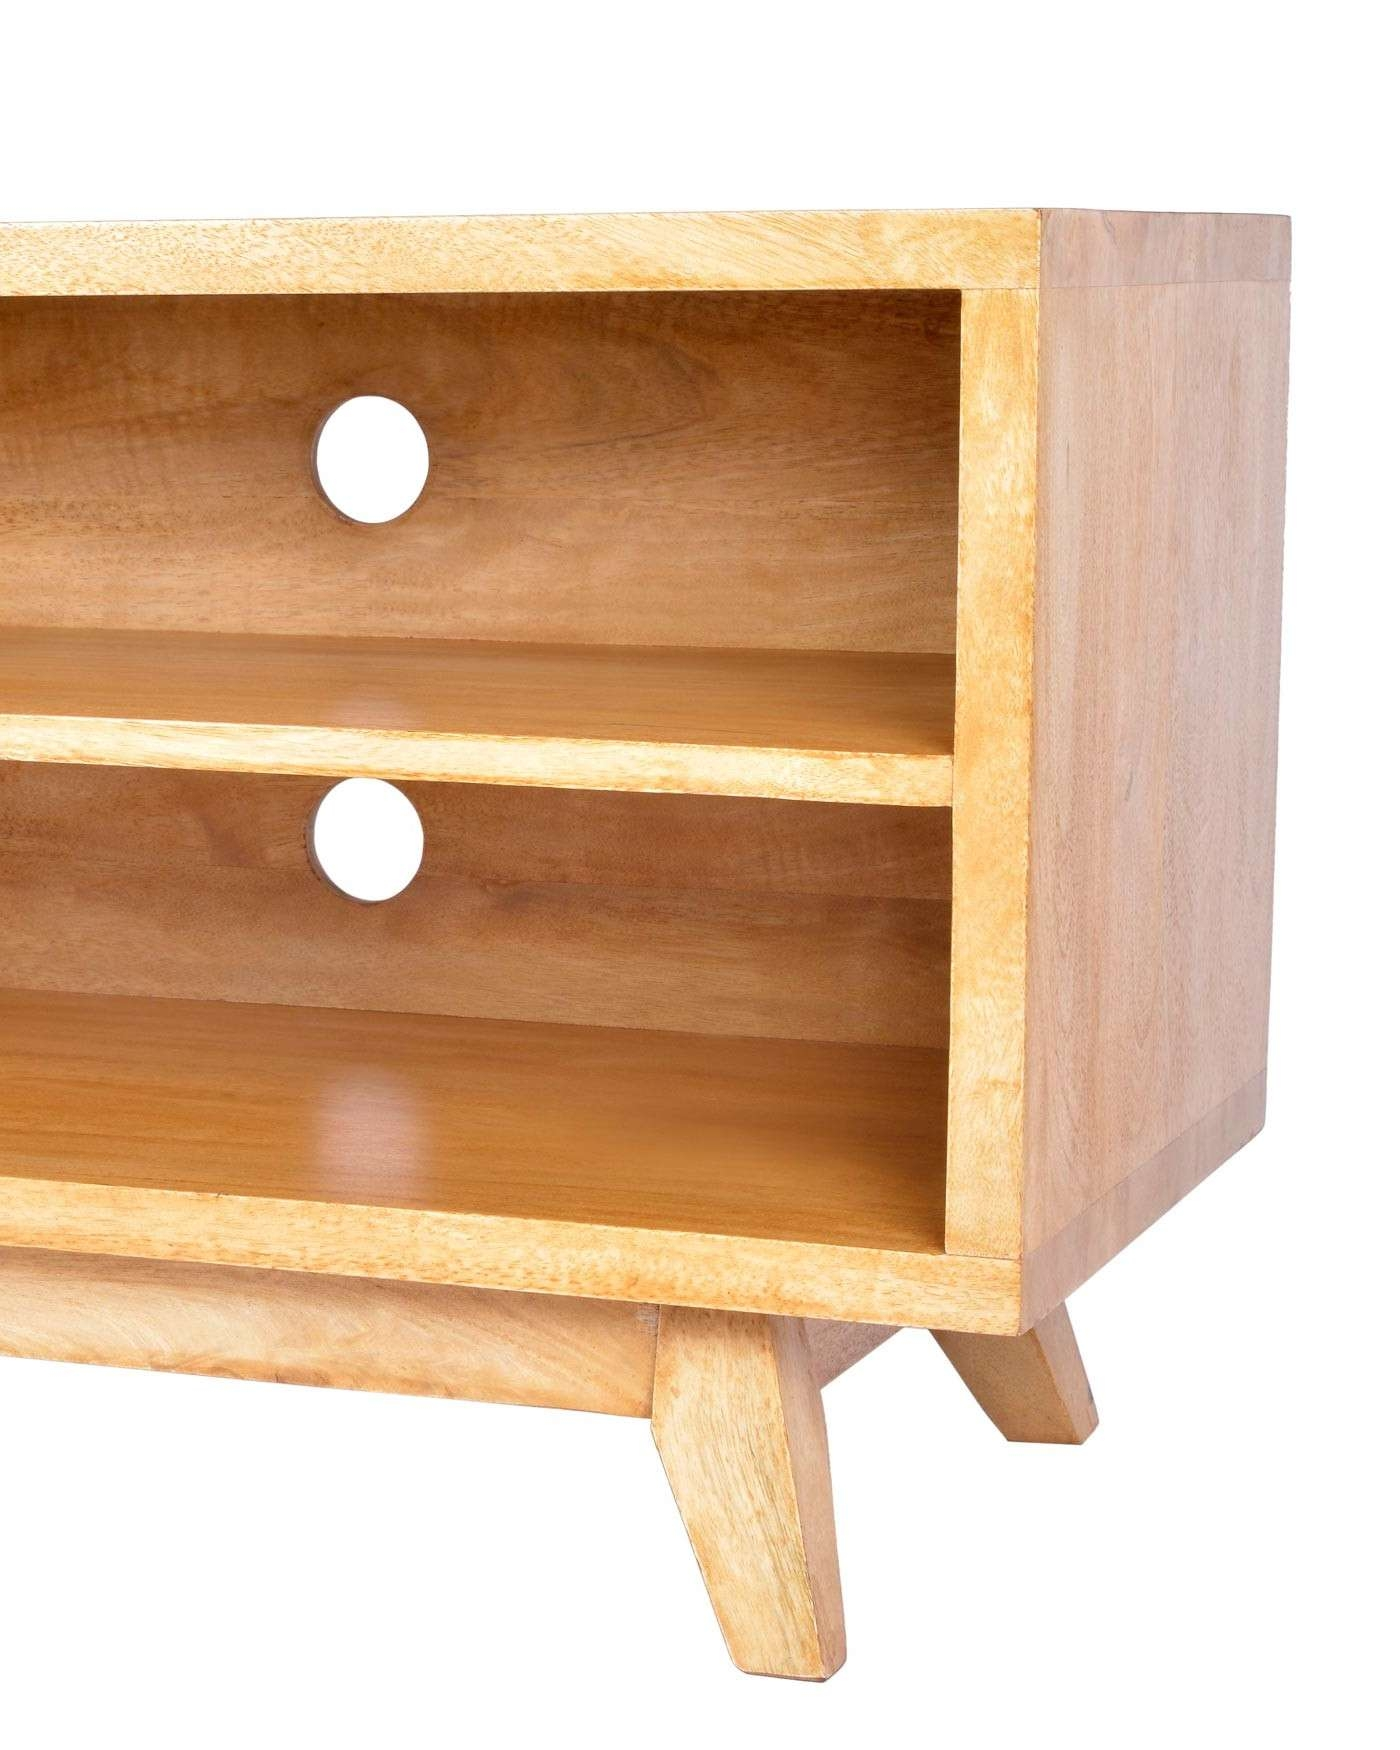 Retro Wooden Tv Stand With Shelf 100% Solid Mango Wood Oak Shade Throughout Mango Tv Stands (View 10 of 15)